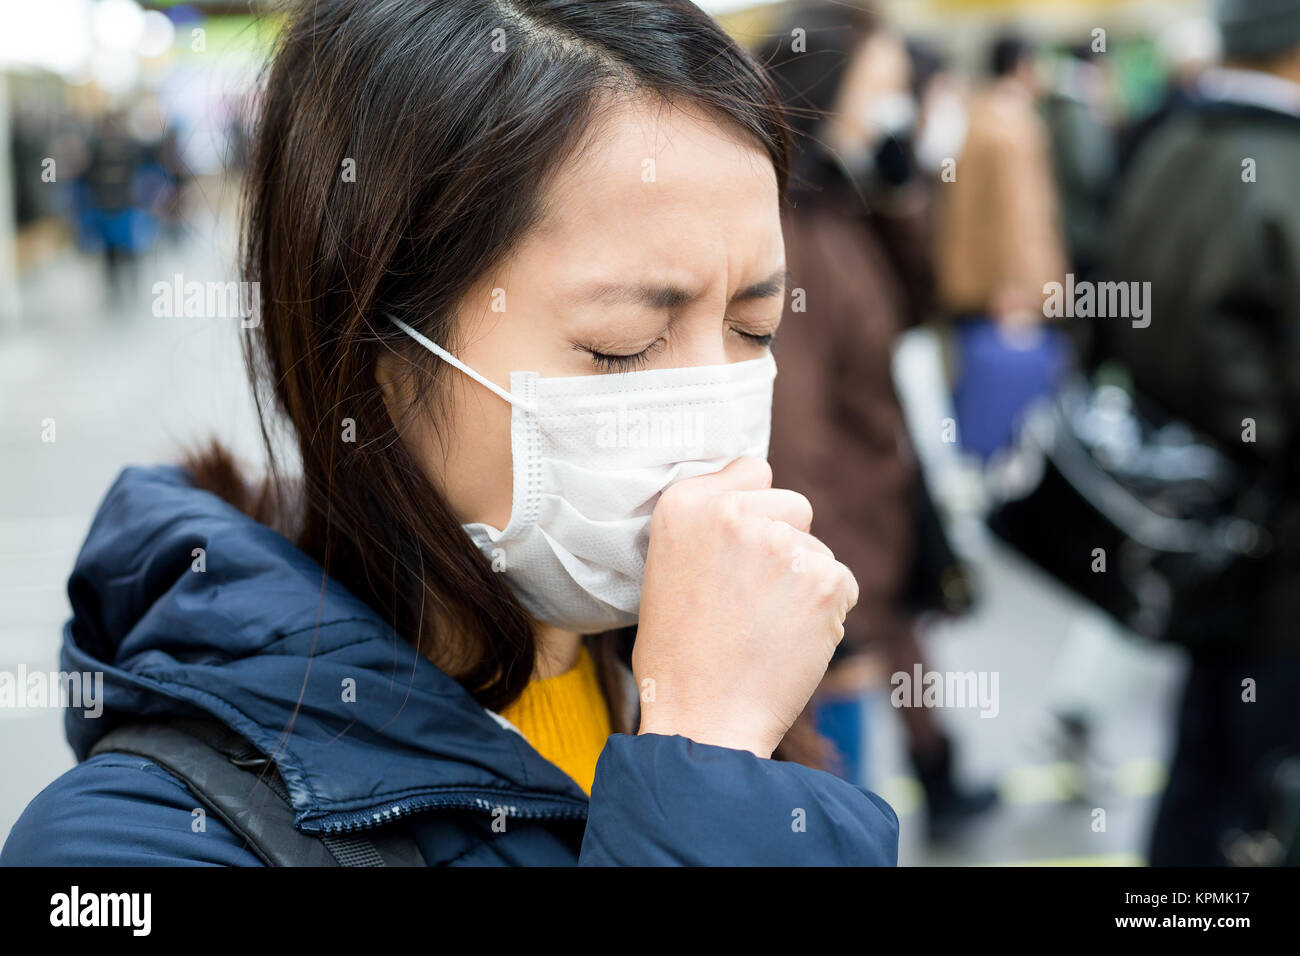 Woman suffer from sick in crowded of people - Stock Image